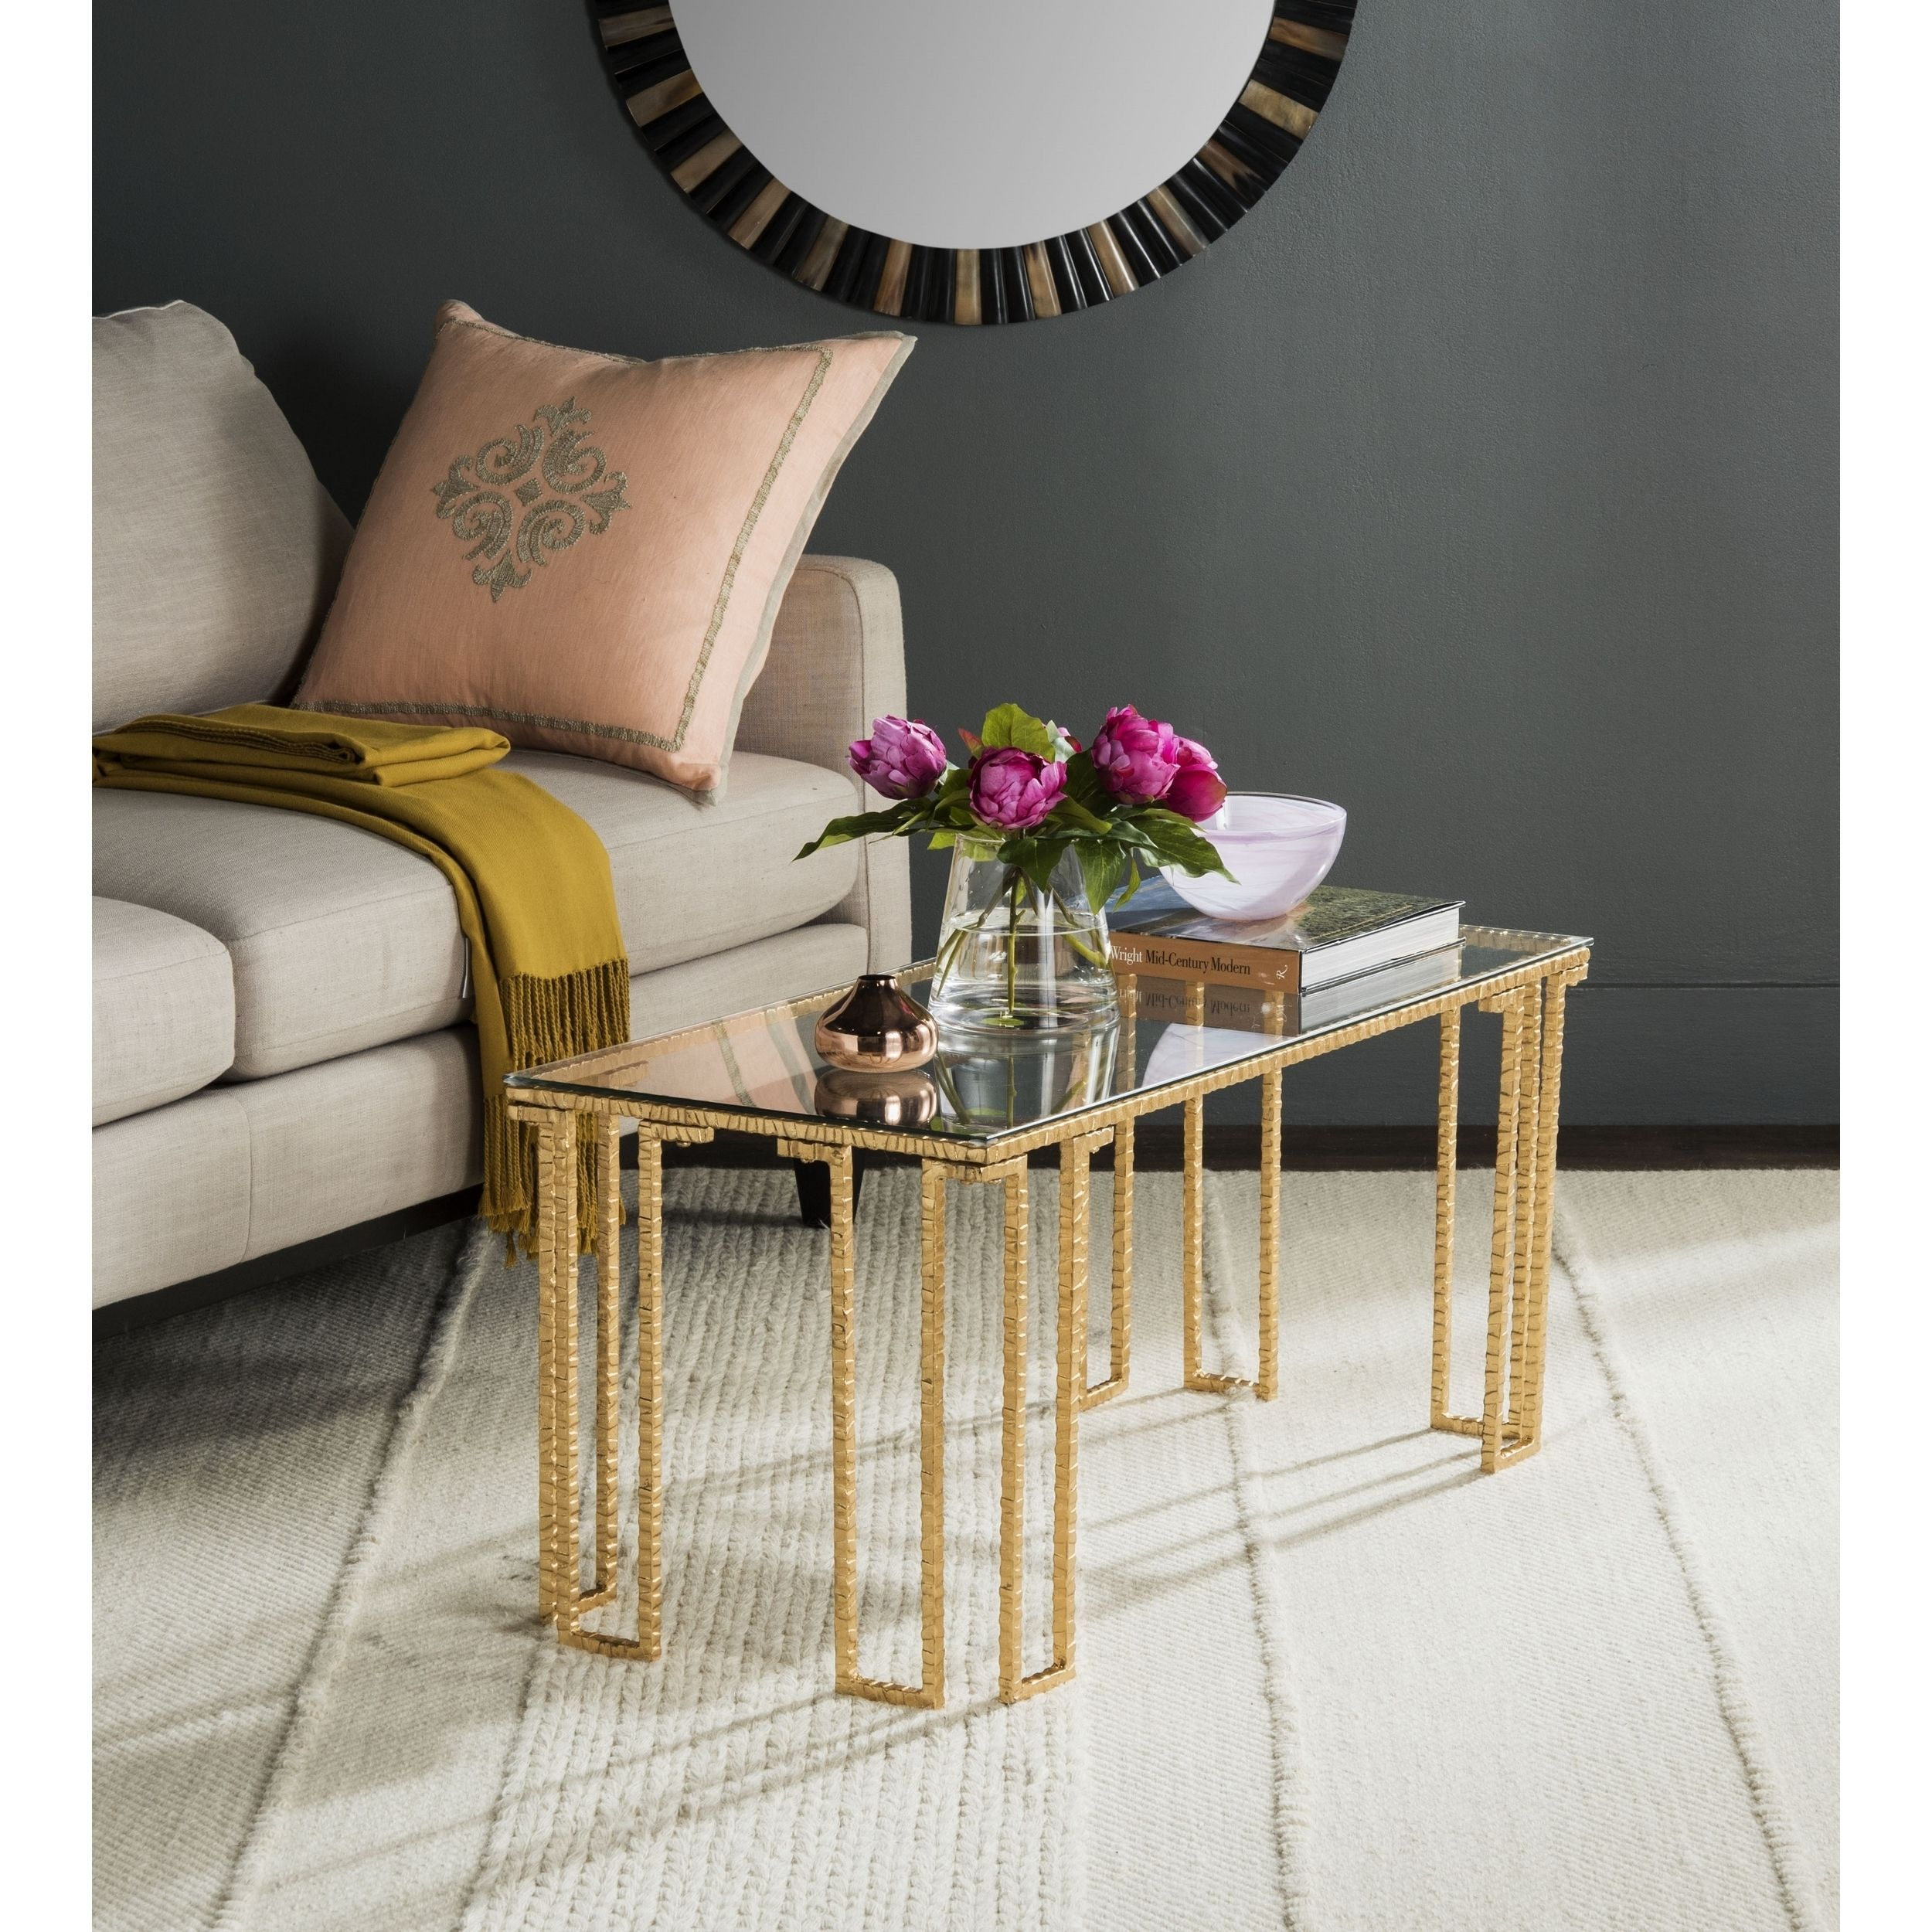 Modern glass end table  Giacomettius sculptural style inspired this contemporary glass